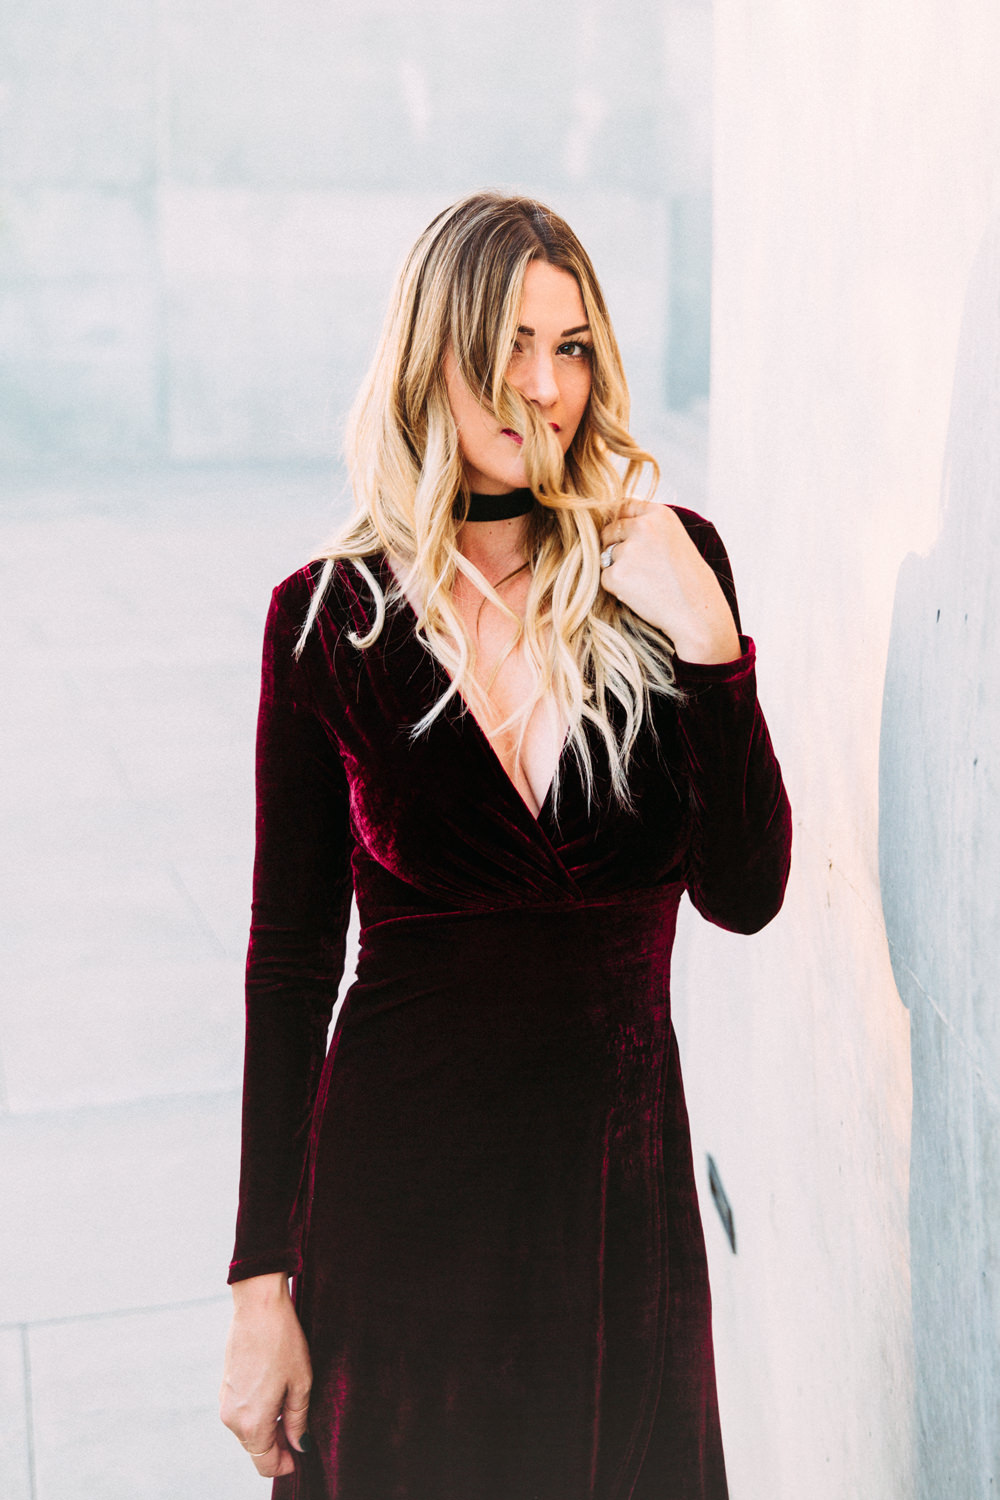 Caitlin Lindquist of the fashion blog Dash of Darling shares her favorite affordable holiday party dresses from Lulus.